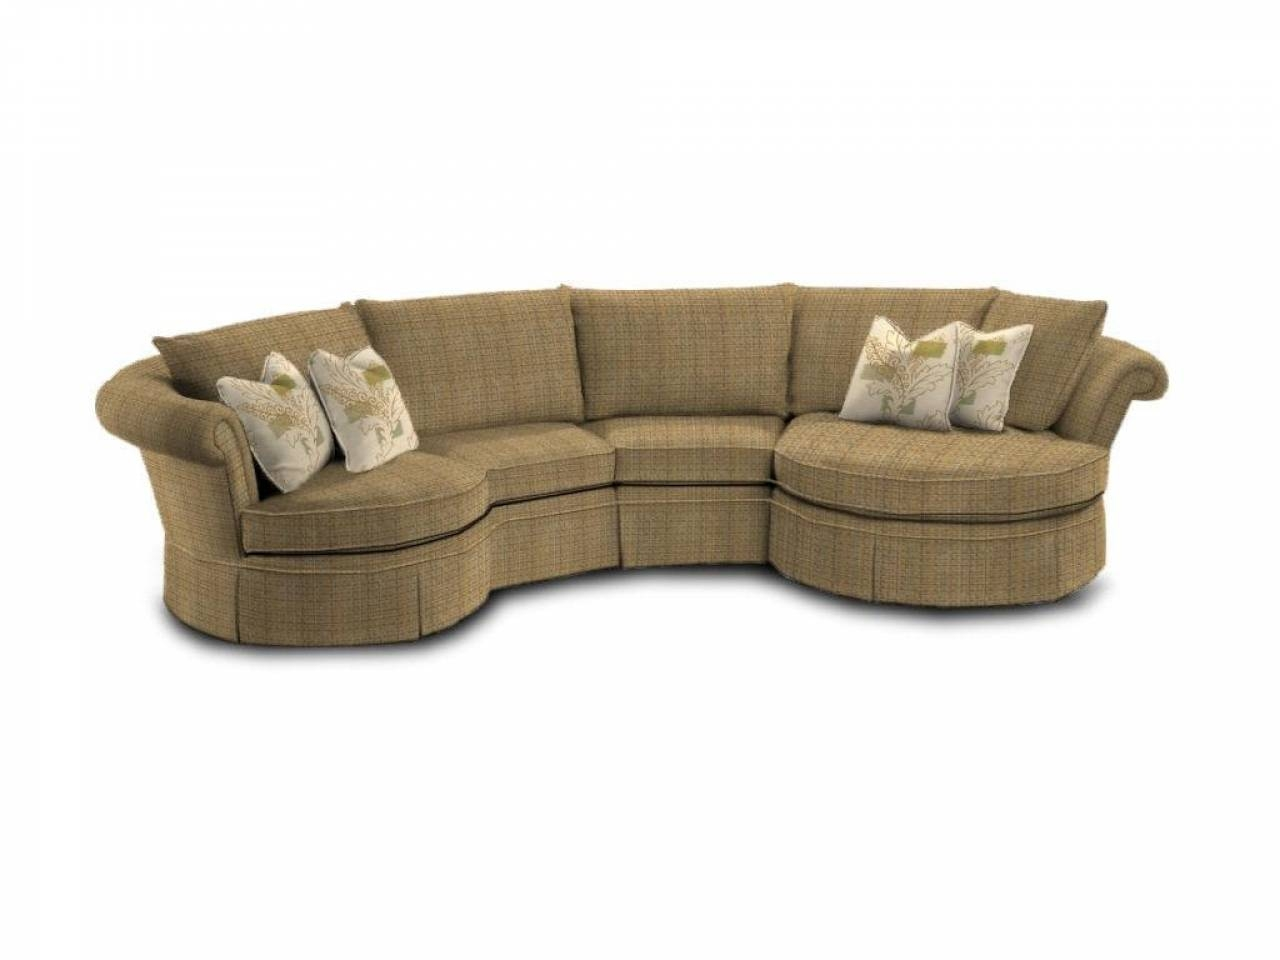 Round Sectional Sofa | Roselawnlutheran regarding Circular Sectional Sofa (Image 23 of 30)